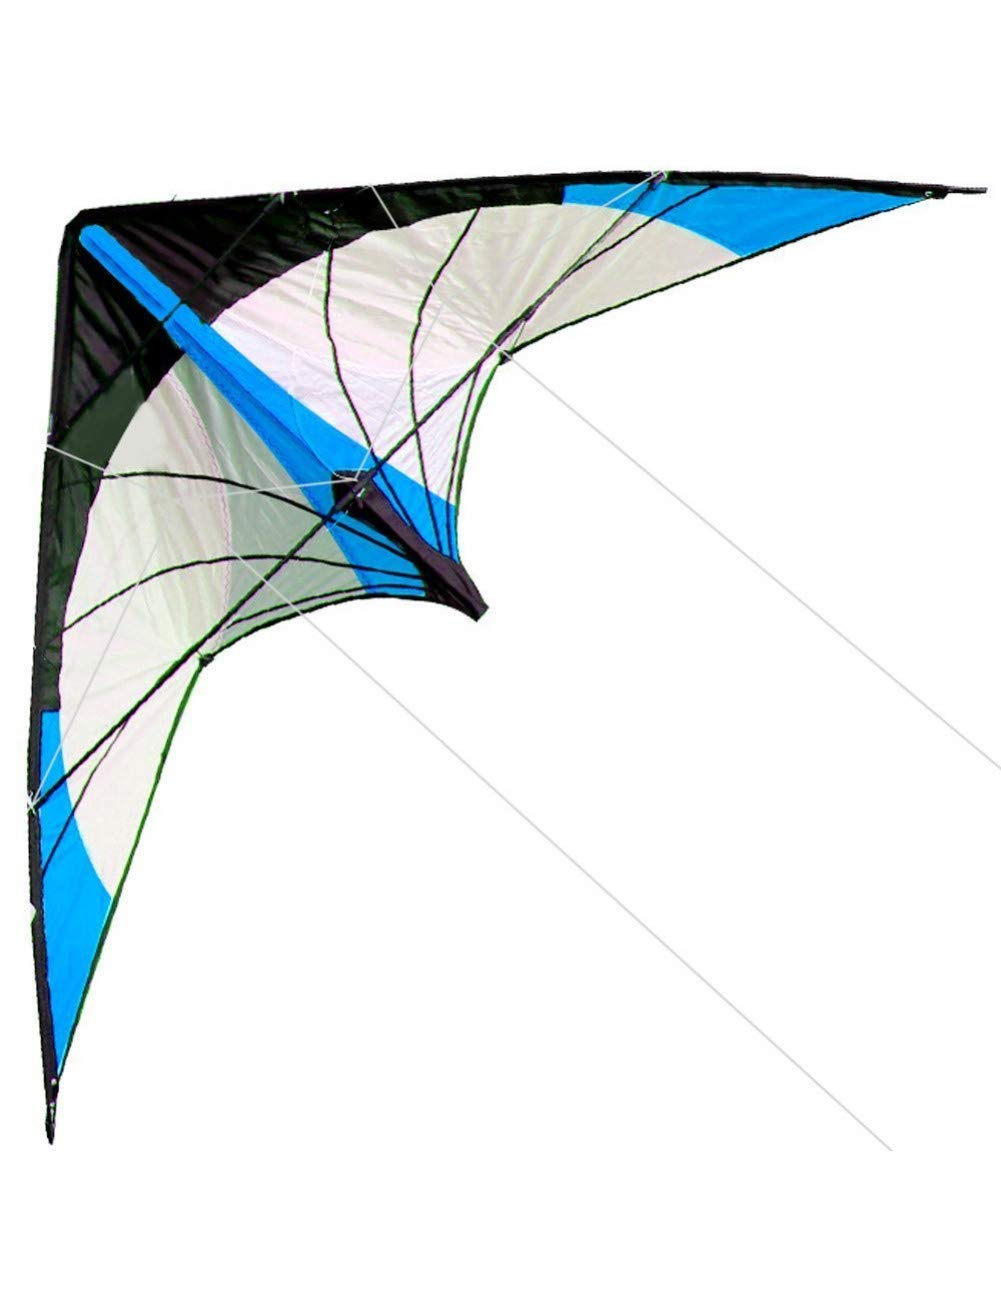 ZSYF Kite Outdoor Fun Sports New 48 Inch Dual Line Stunt Kites bluee Kite With Handle And Line Good Flying